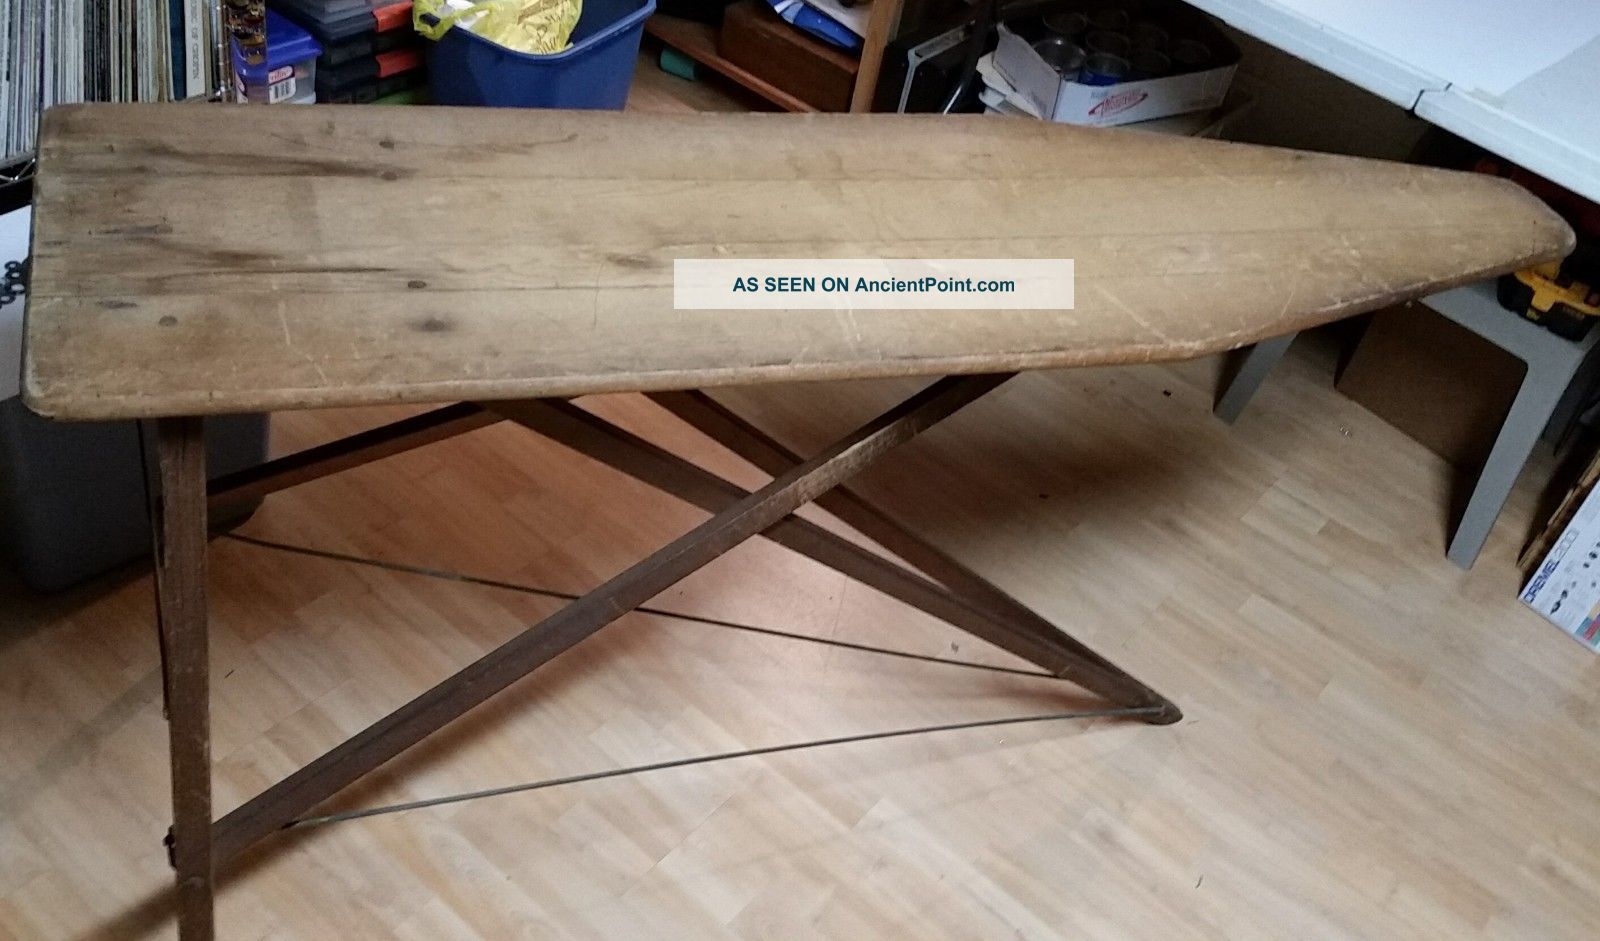 Vintage Folding Wood Ironing Board Wooden Table Bench Decor Antique